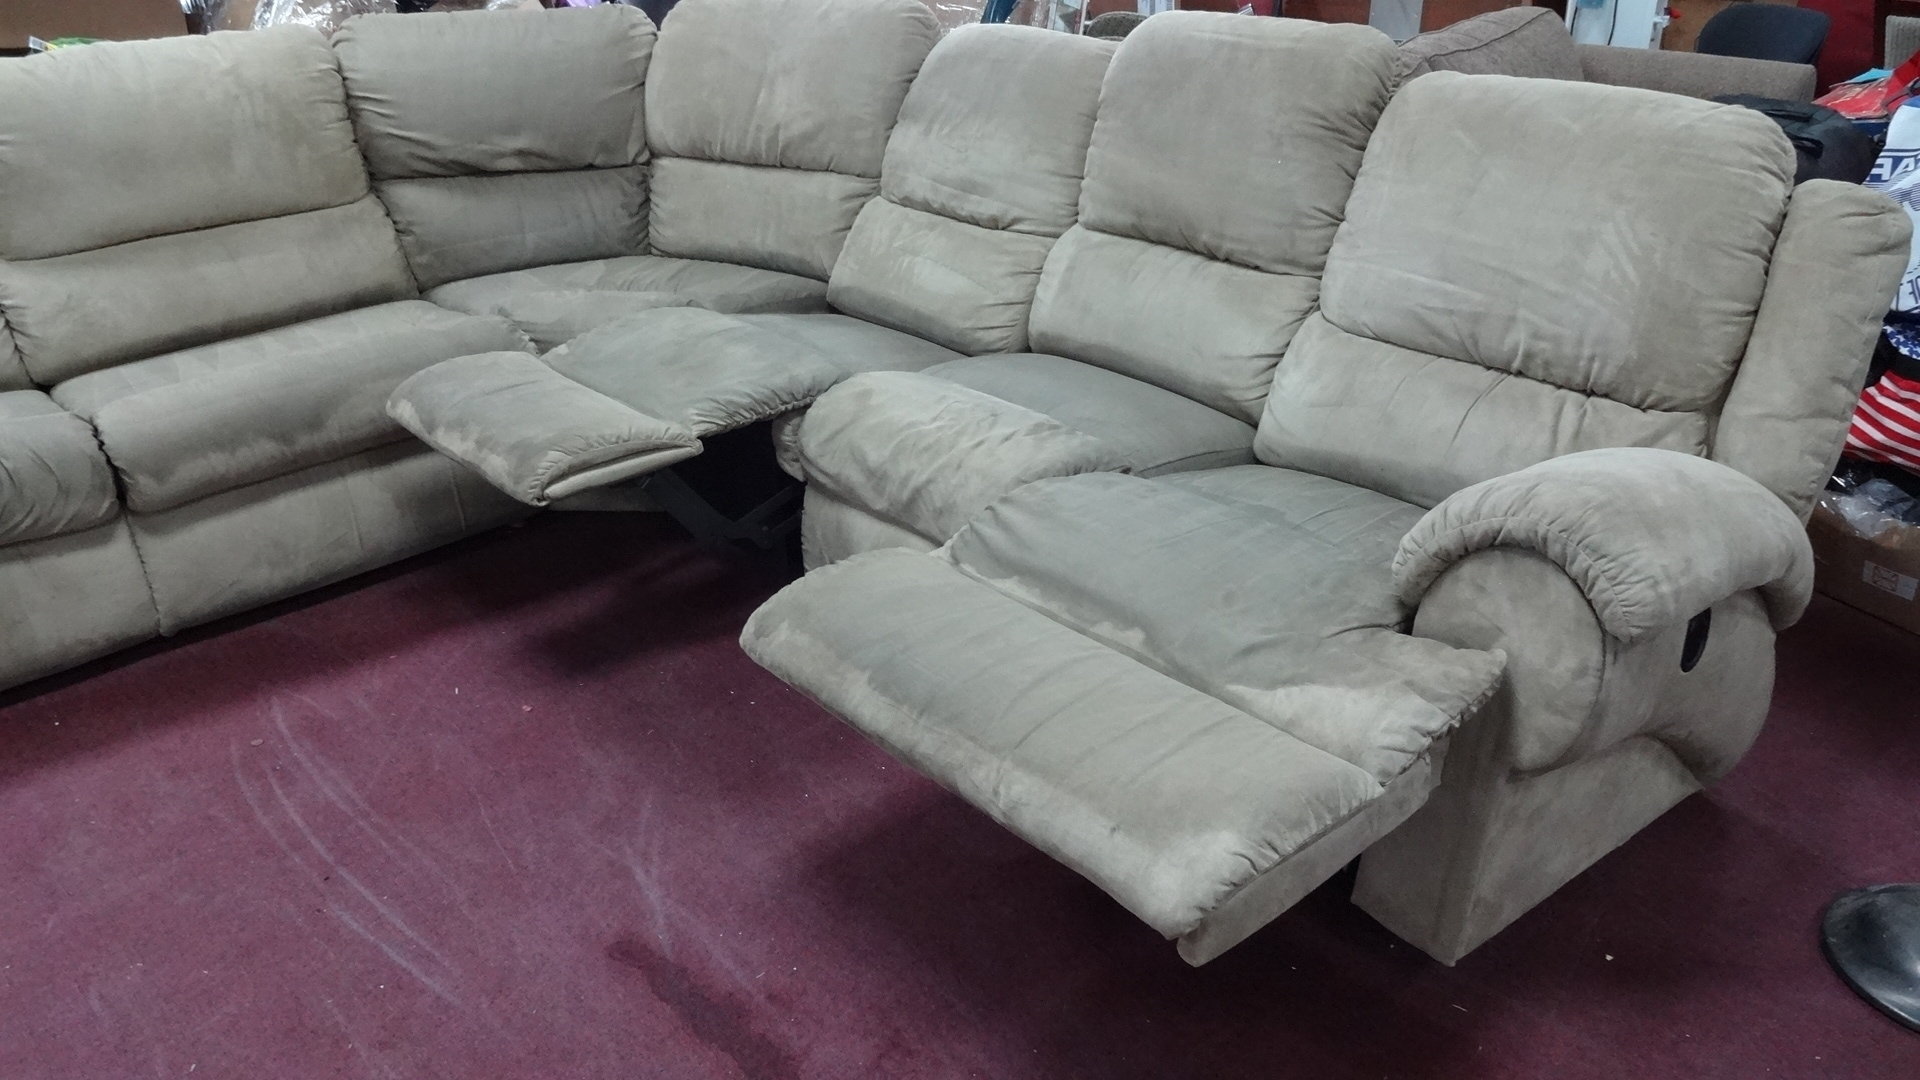 La Z Boy Sectional Sofa Bed • Sofa Bed Intended For Latest The Brick Sectional Sofas (View 7 of 20)